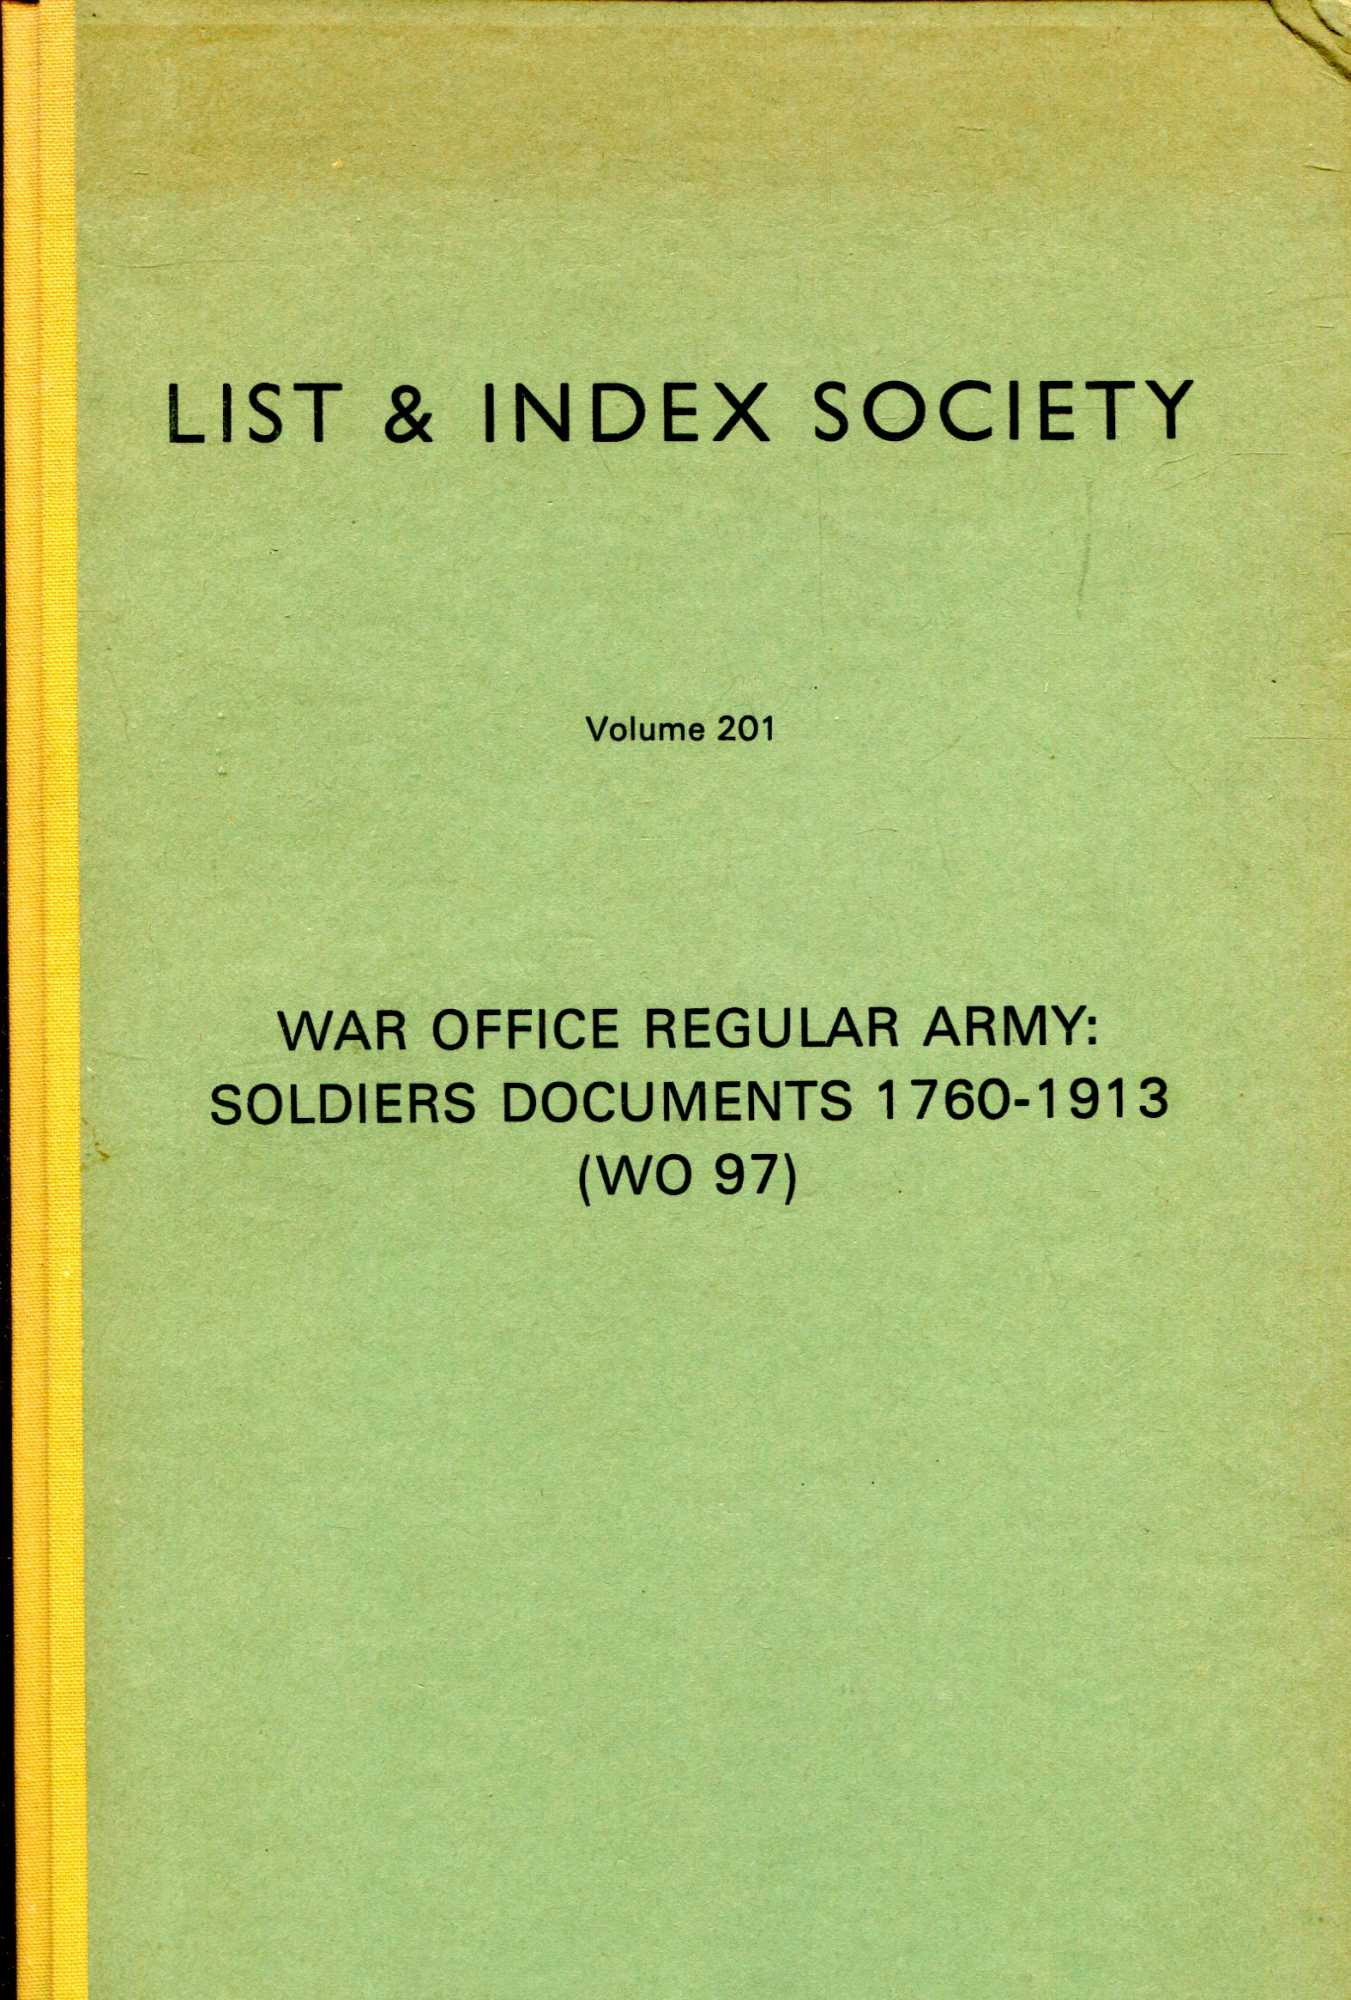 Image for List & Index Society volume 201 : War Office Regular Army: Soldiers Documents 1760-1913 (WO 97)